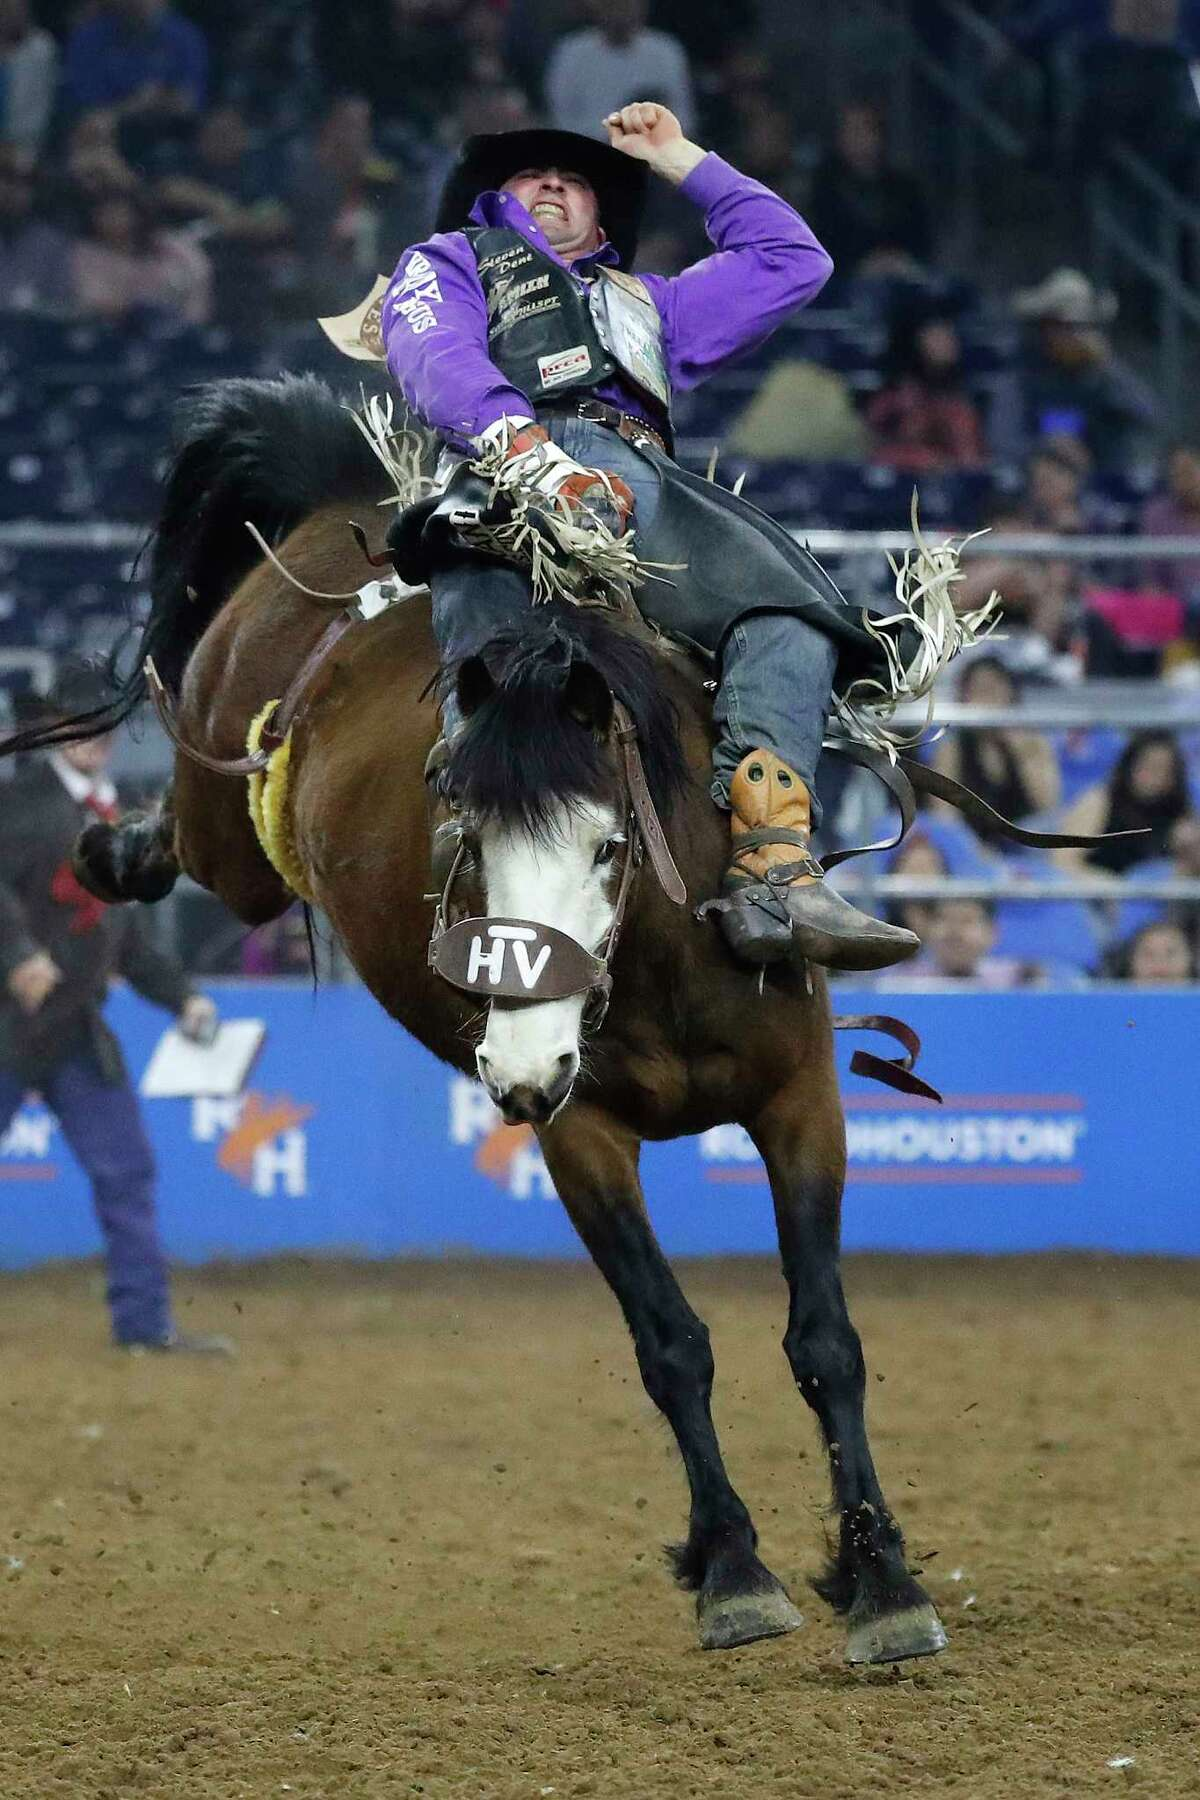 Steven Dent rides Misty Valley as he competed in the bareback riding competition during round 2 of Super Series I of the Houston Livestock Show and Rodeo at NRG Stadium, Tuesday, Feb. 26, 2019, in Houston.